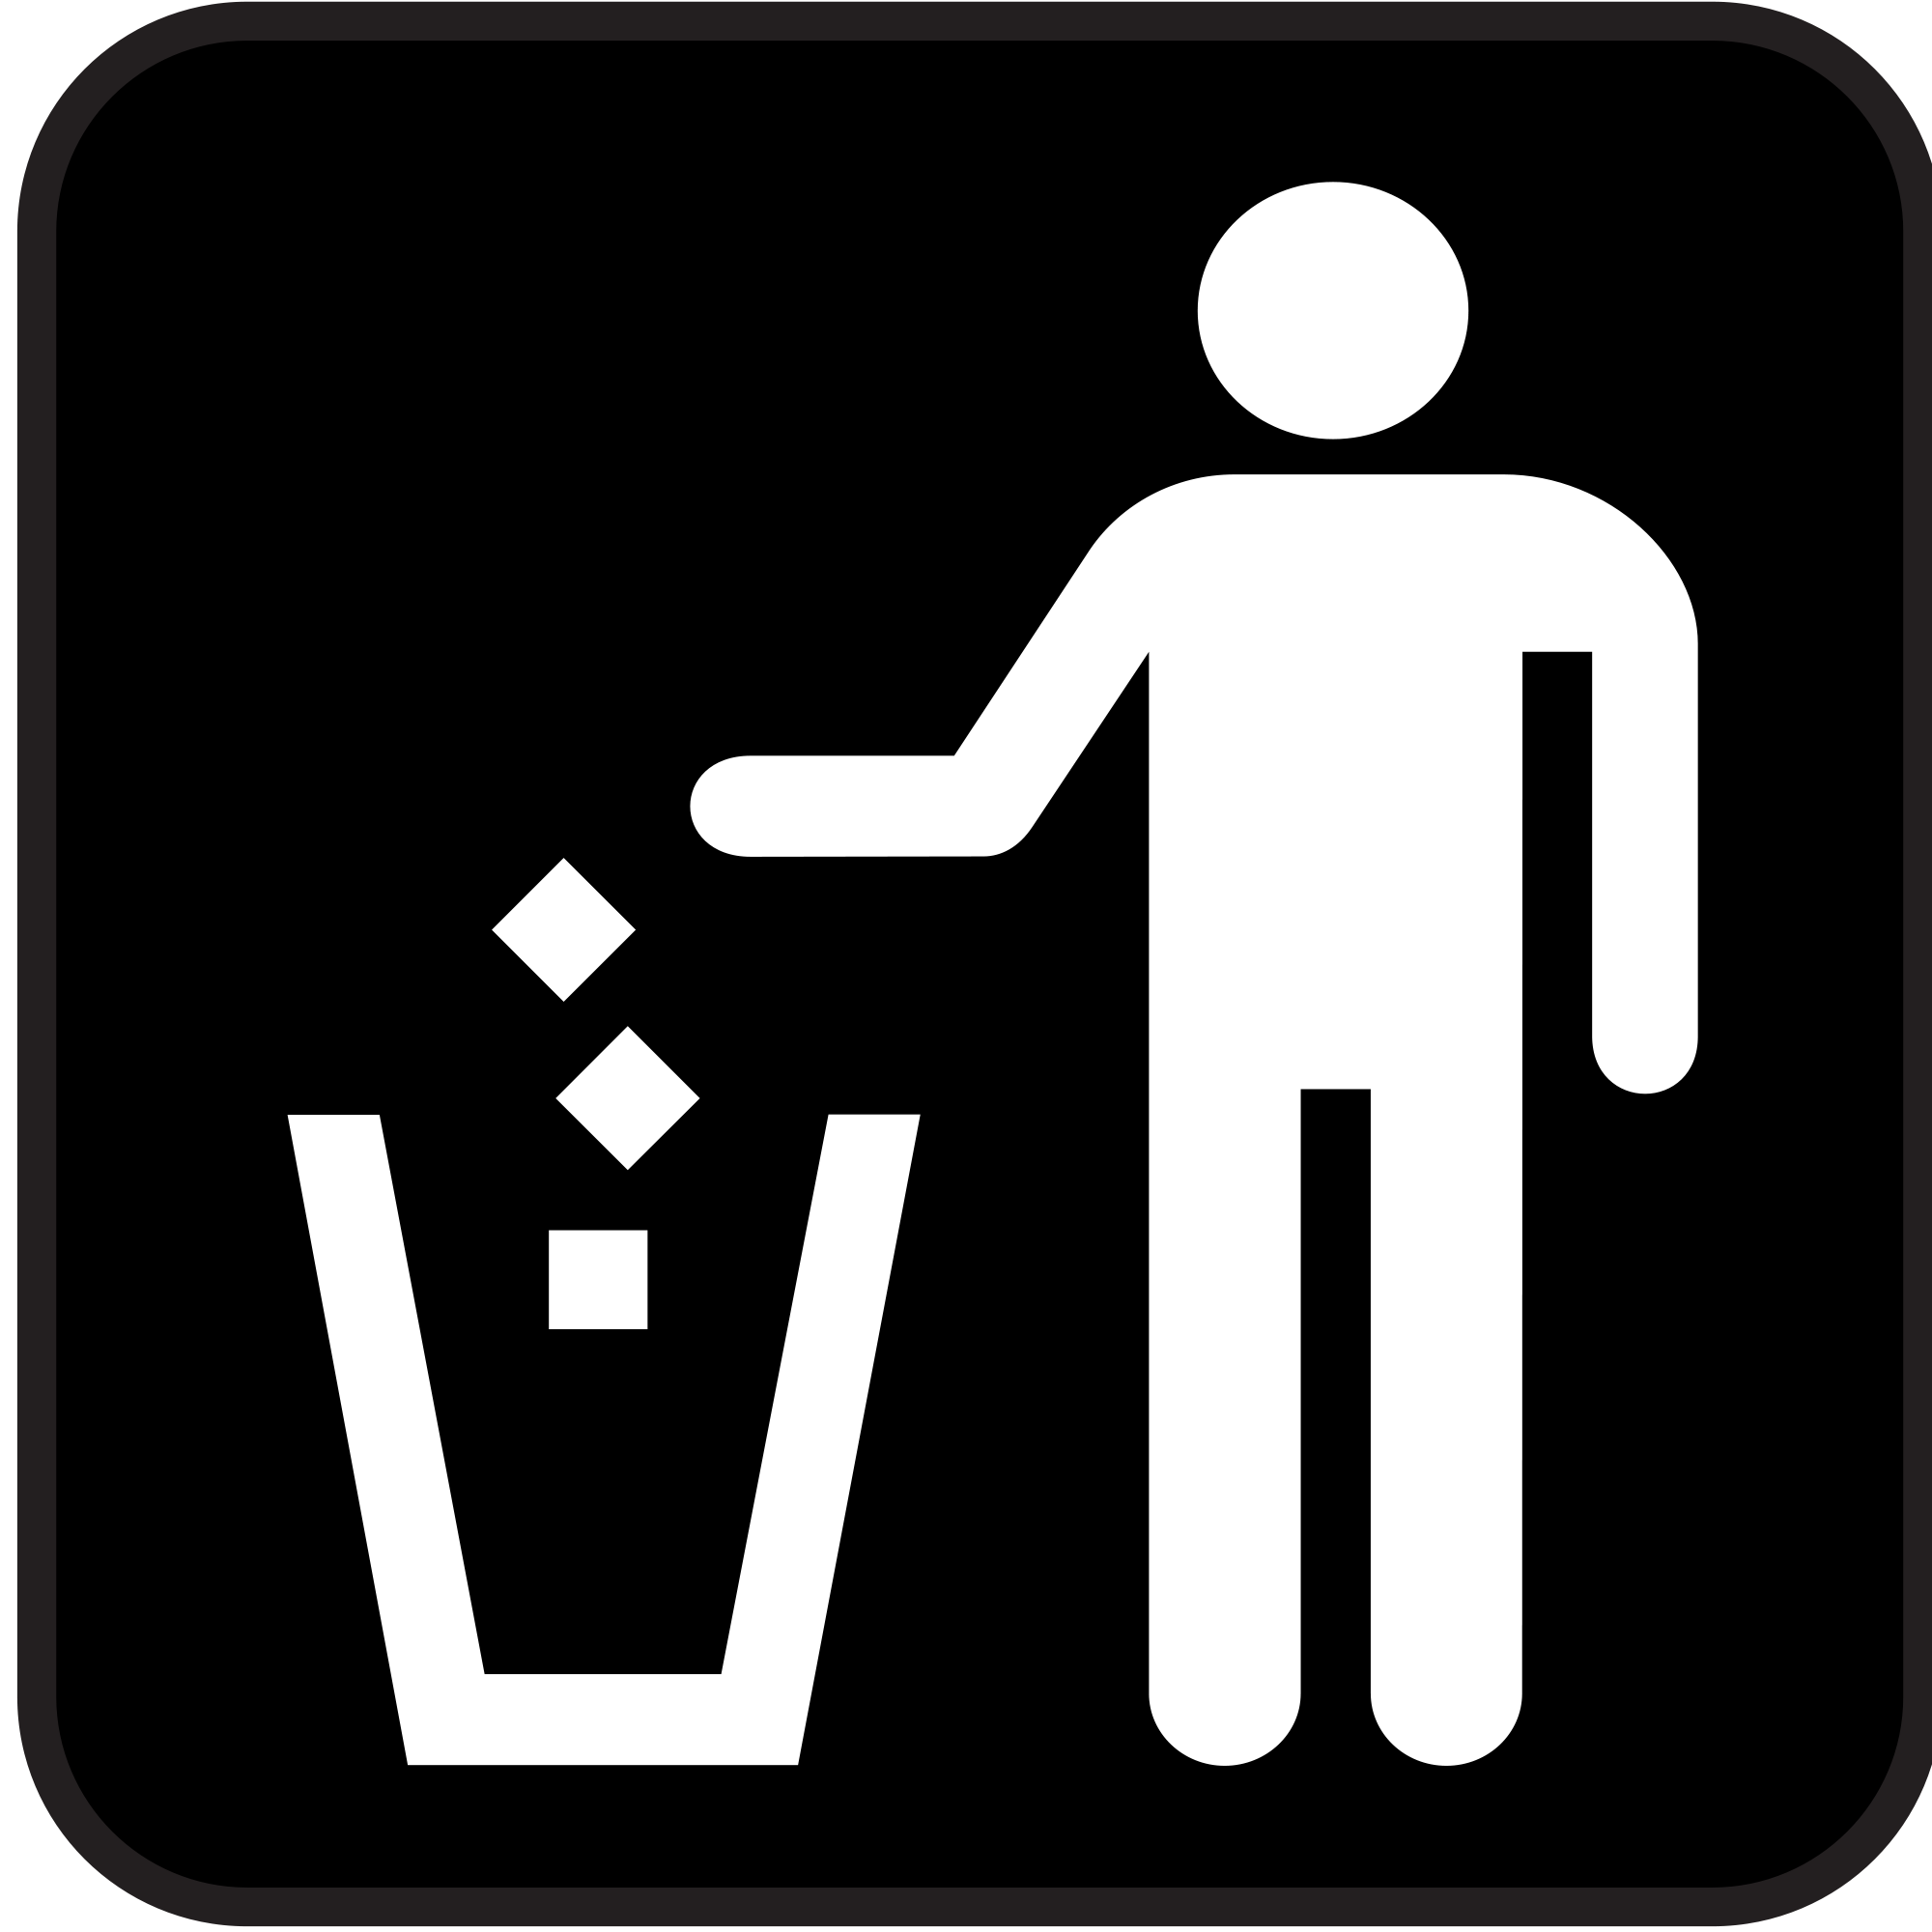 Litter svg #15, Download drawings